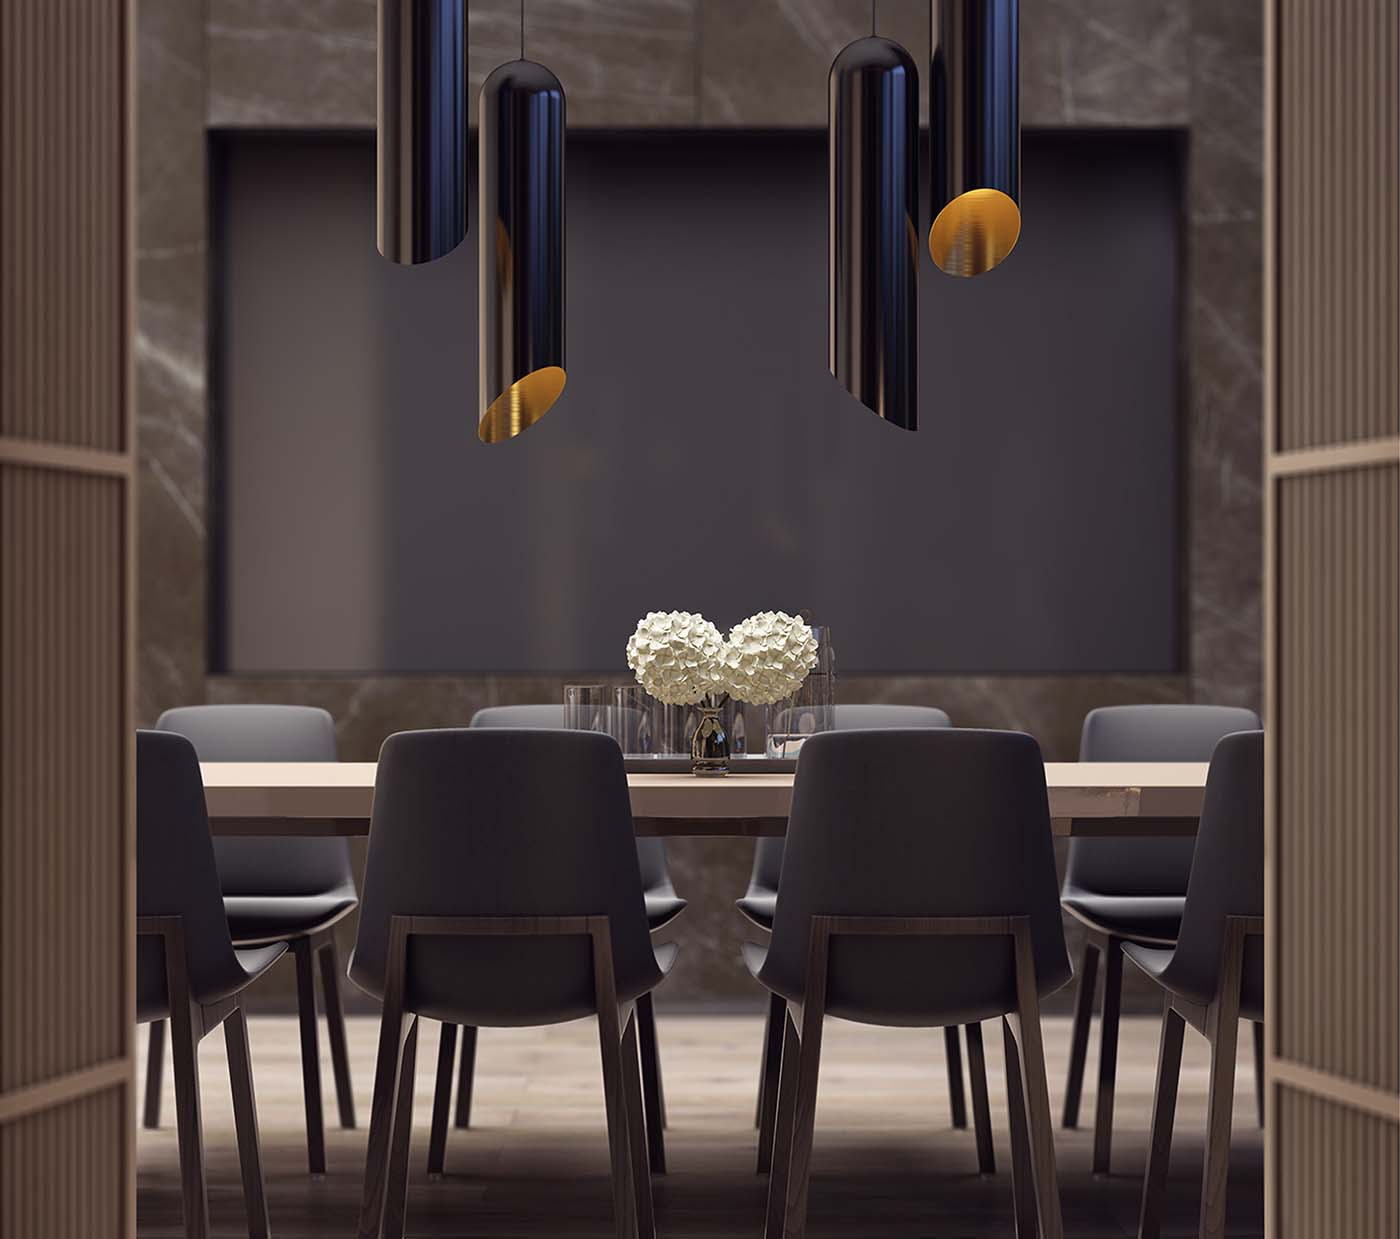 Luxurious meeting room showing a table, chairs and lamps.